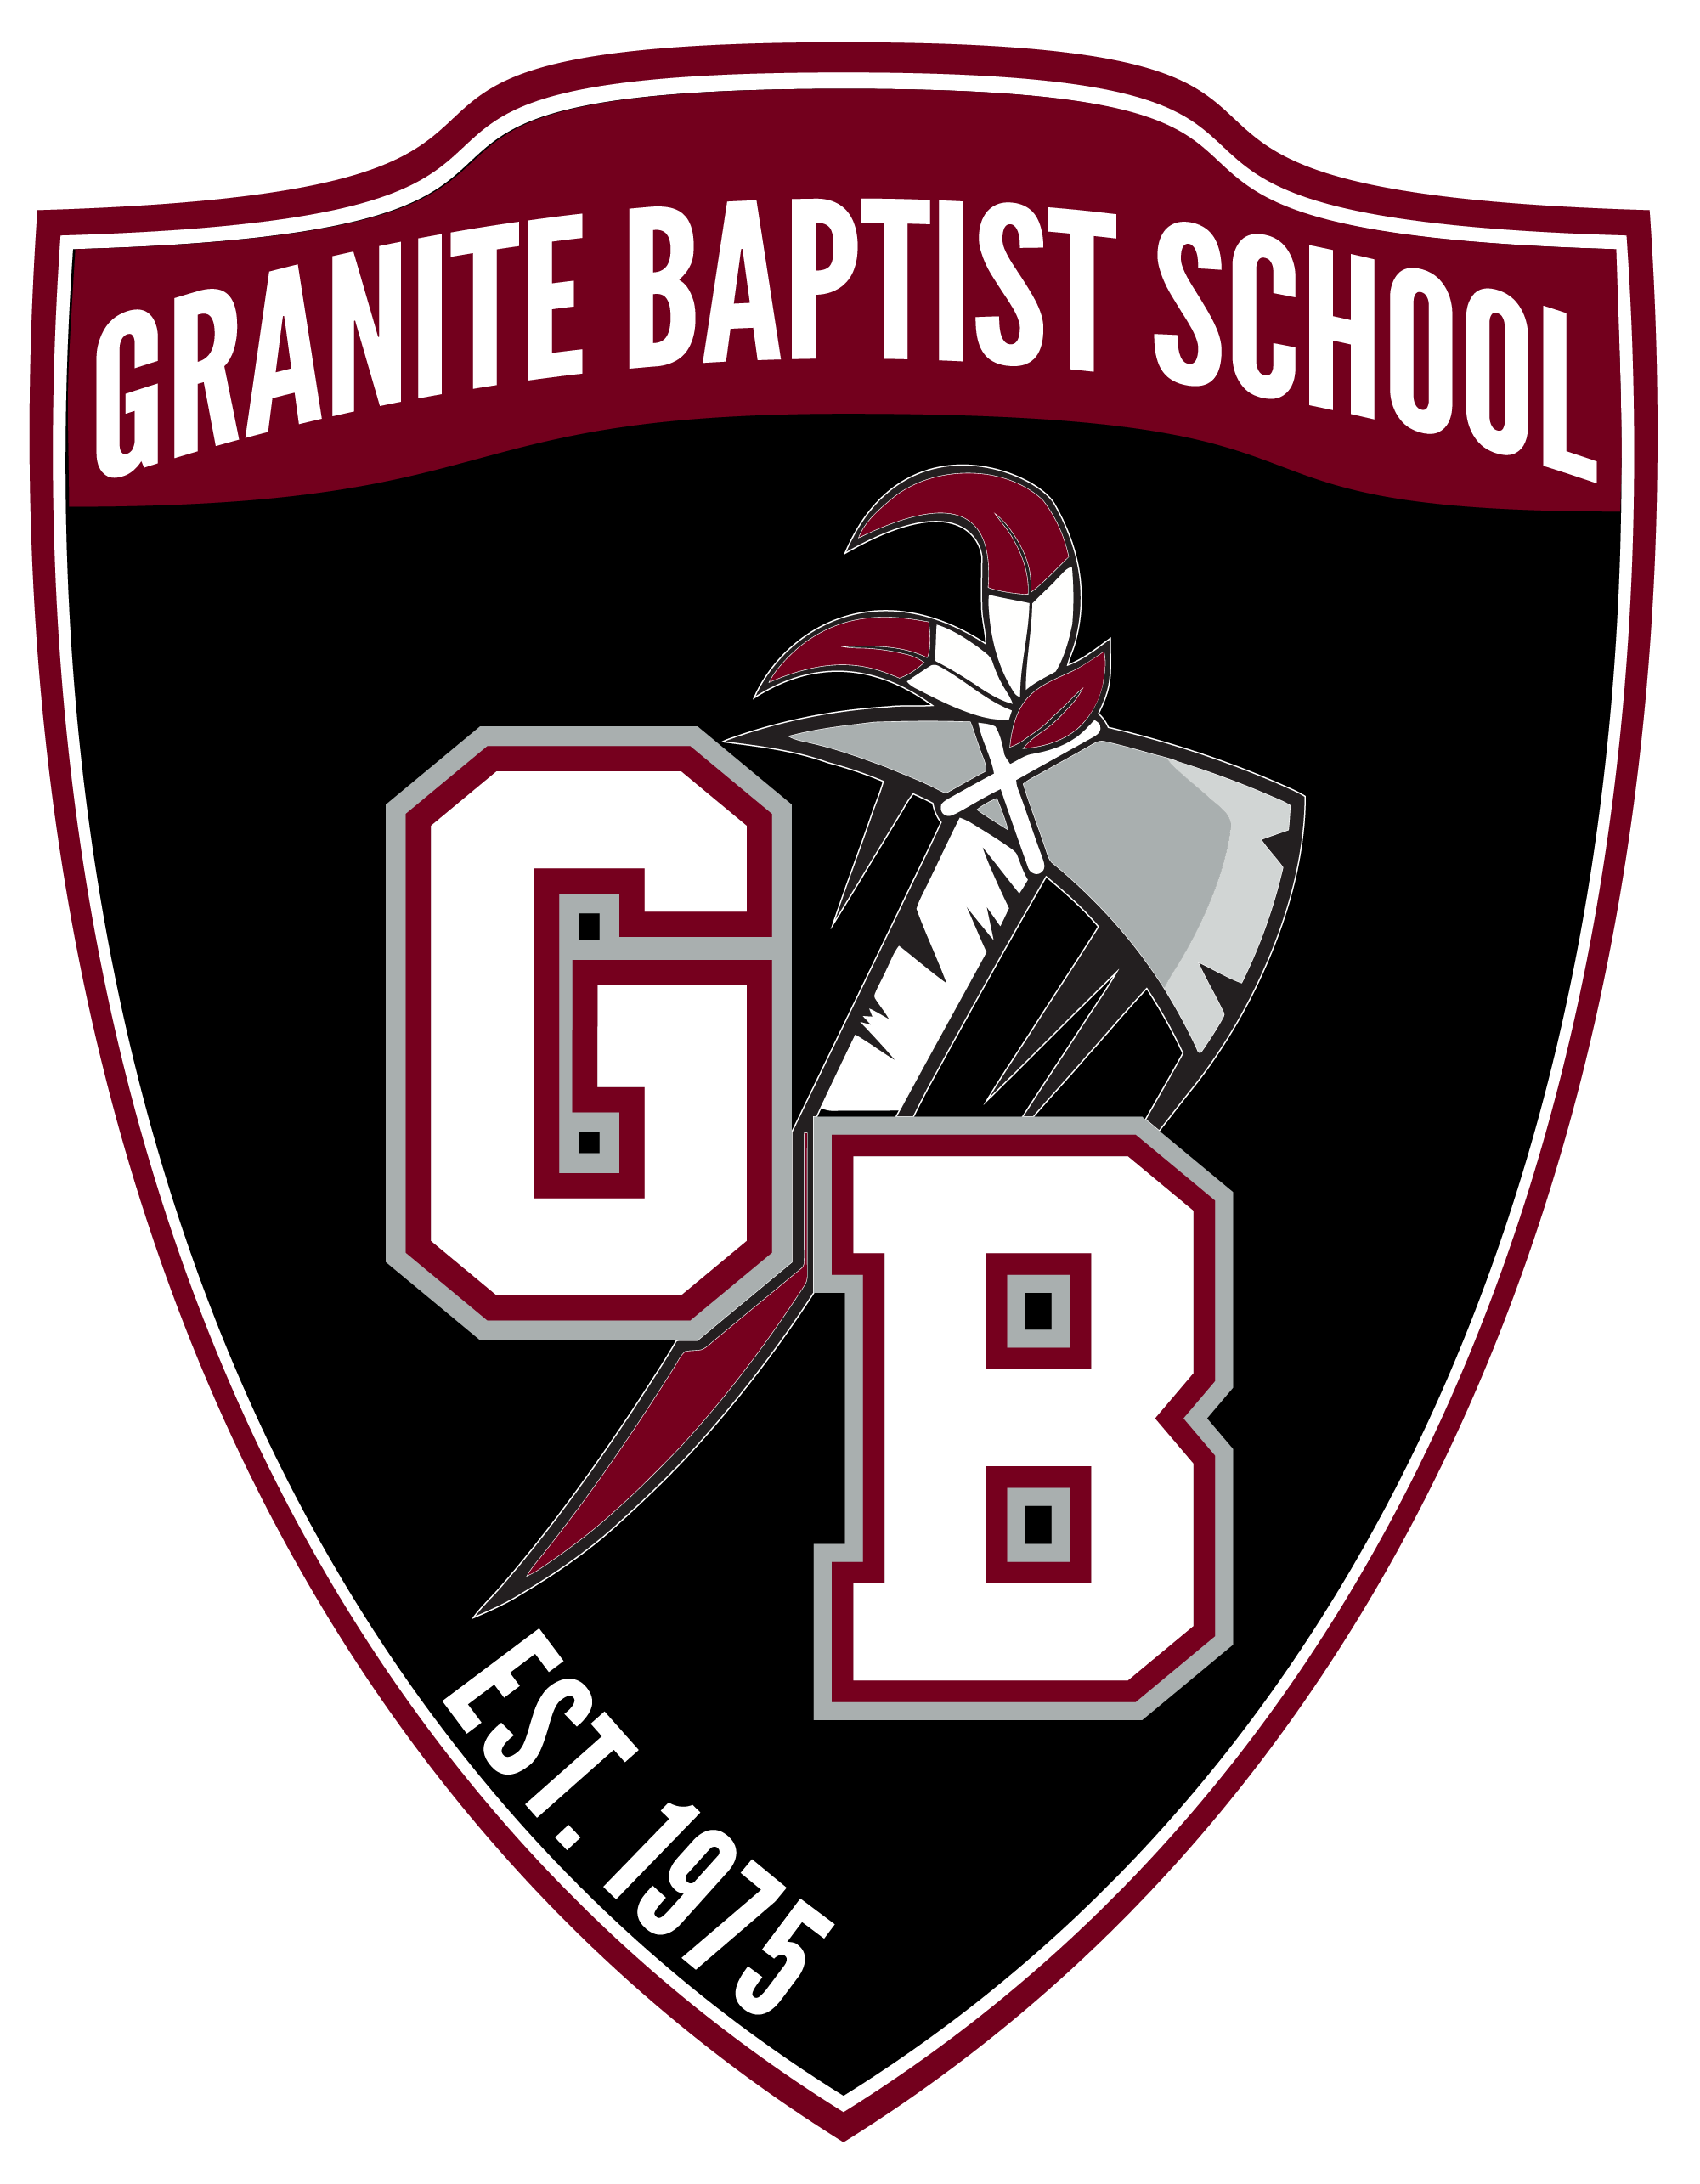 Granite Baptist Church School   7823 Oakwood Road, Glen Burnie, MD 21061  410-761-1118  http://granitebaptistschool.org/  Administrator: James Leeder  Athletic Director: Robert Romberger  Email: robert.romberger@granitebaptist.org